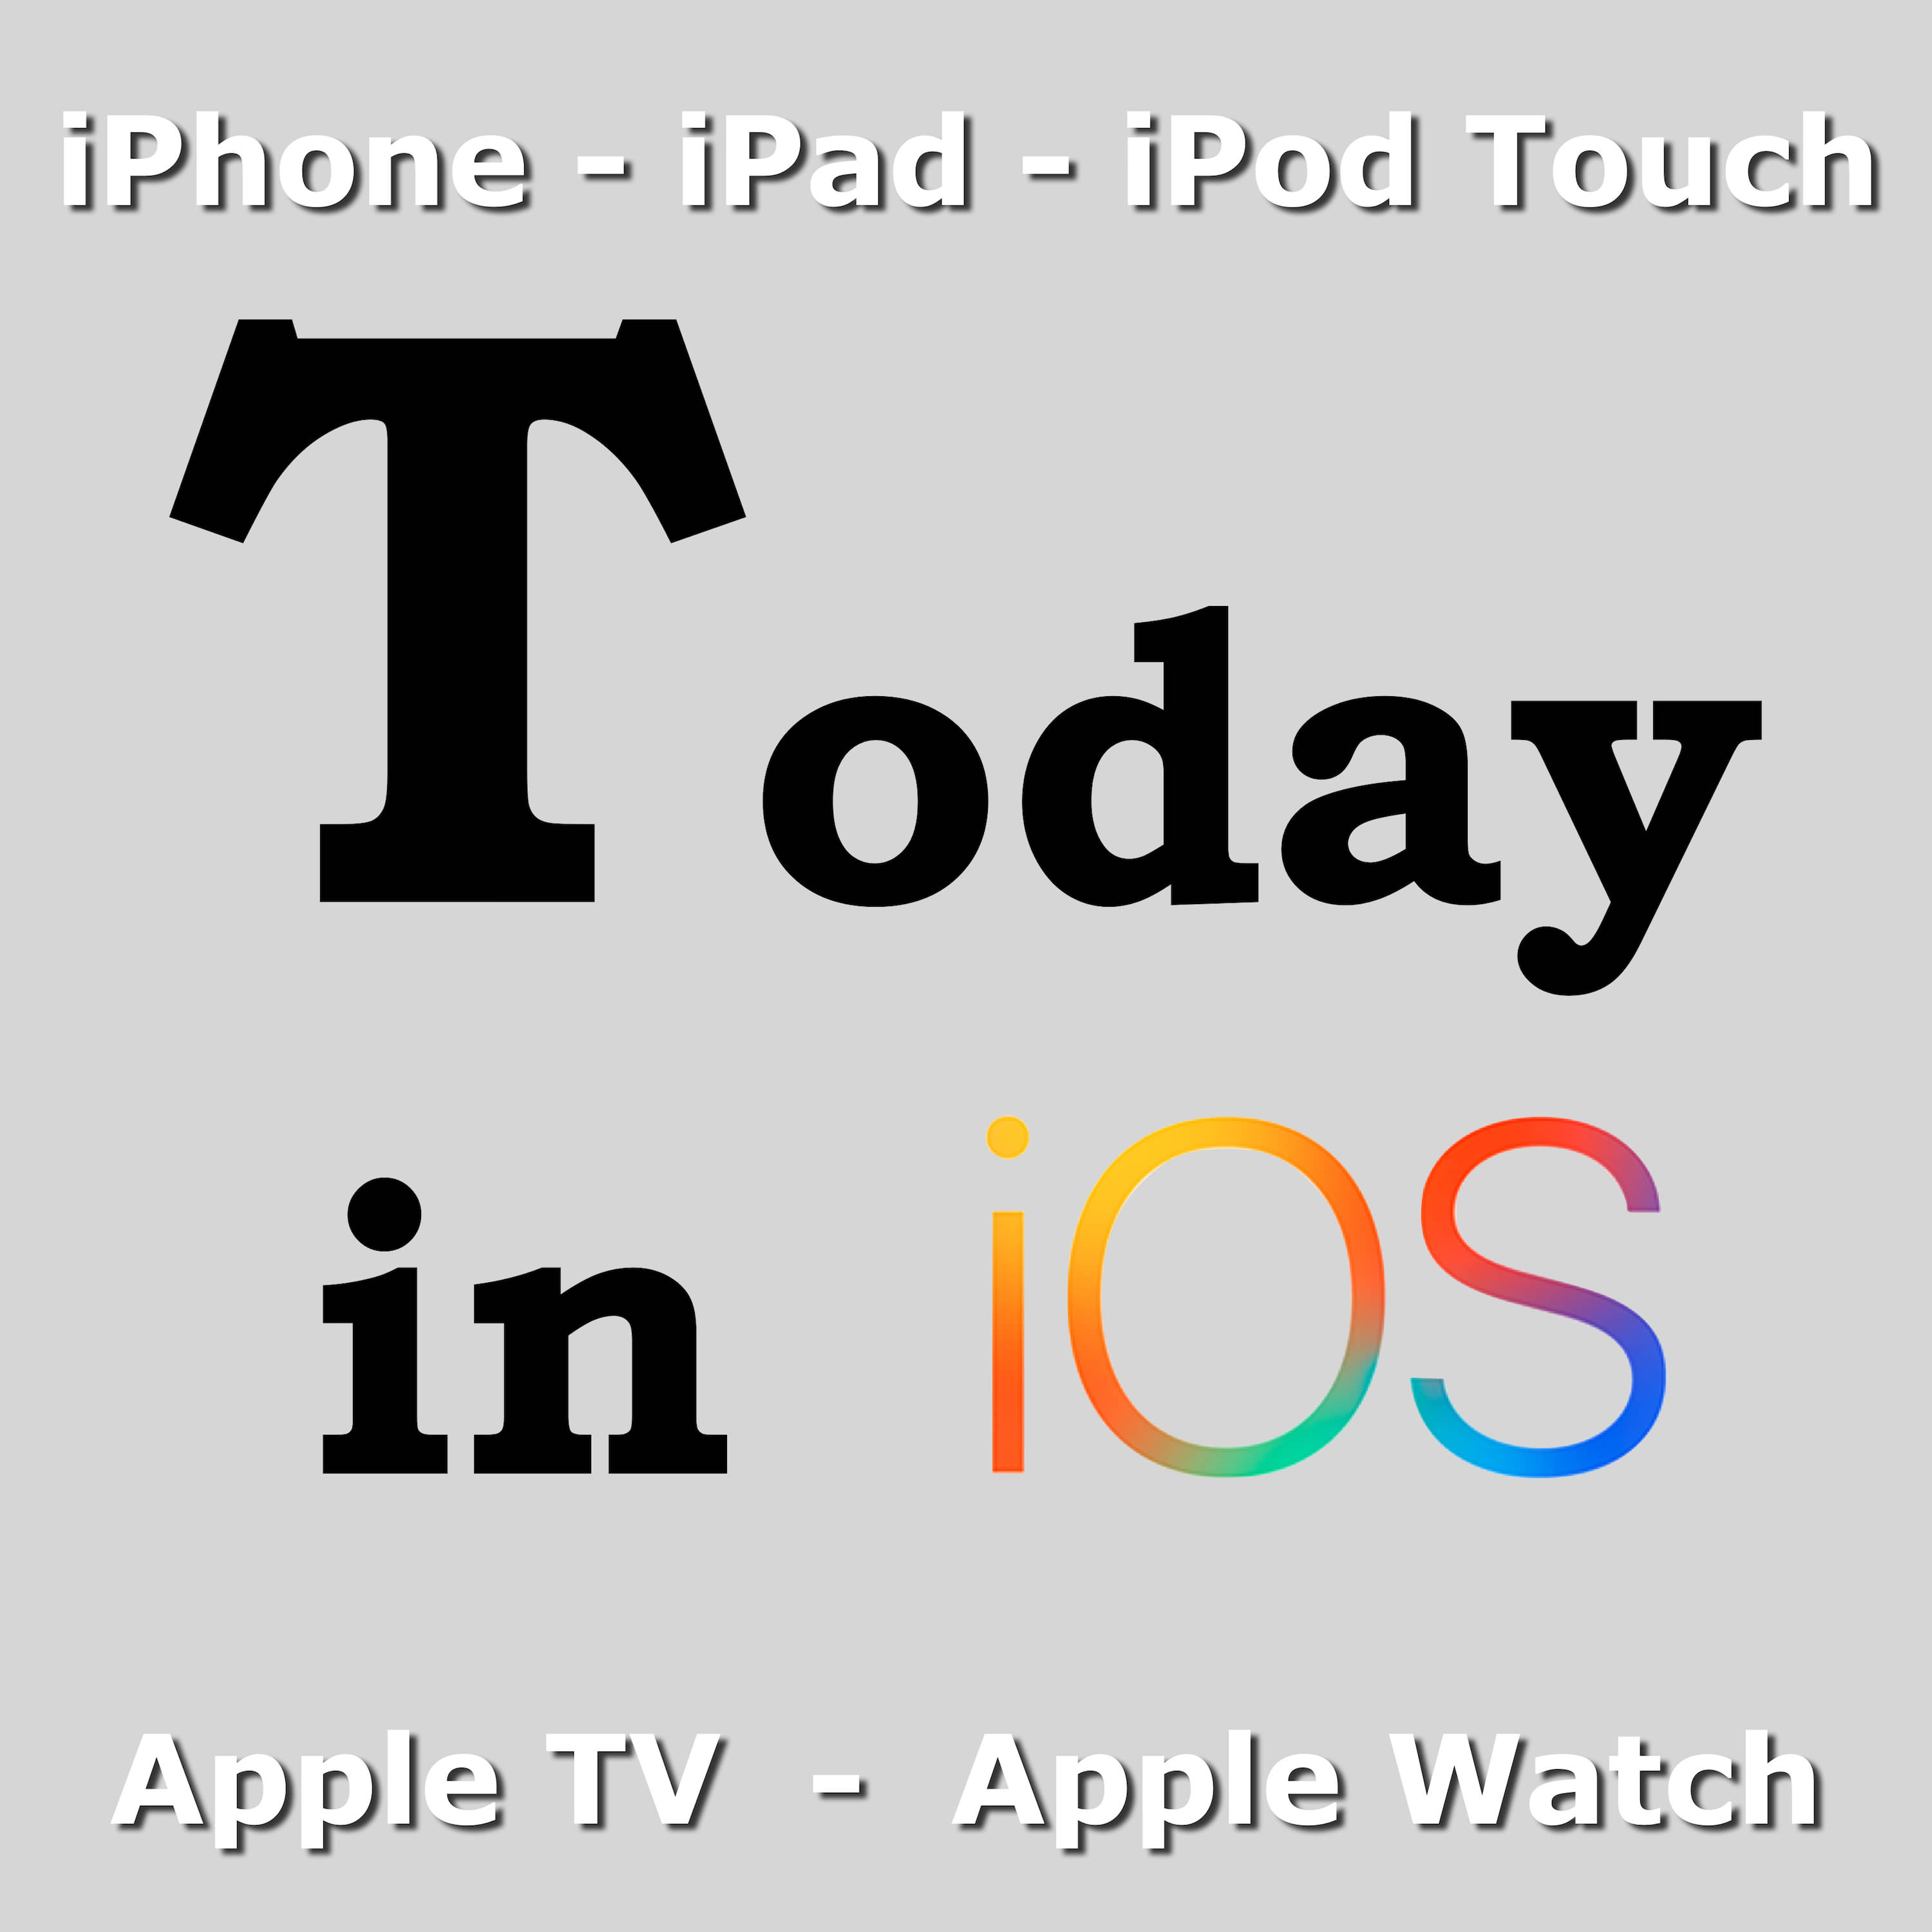 Today in iOS Podcast - The Unofficial iOS, iPhone, iPad, Apple Watch and iPod Touch News and iPhone Apps Podcast logo